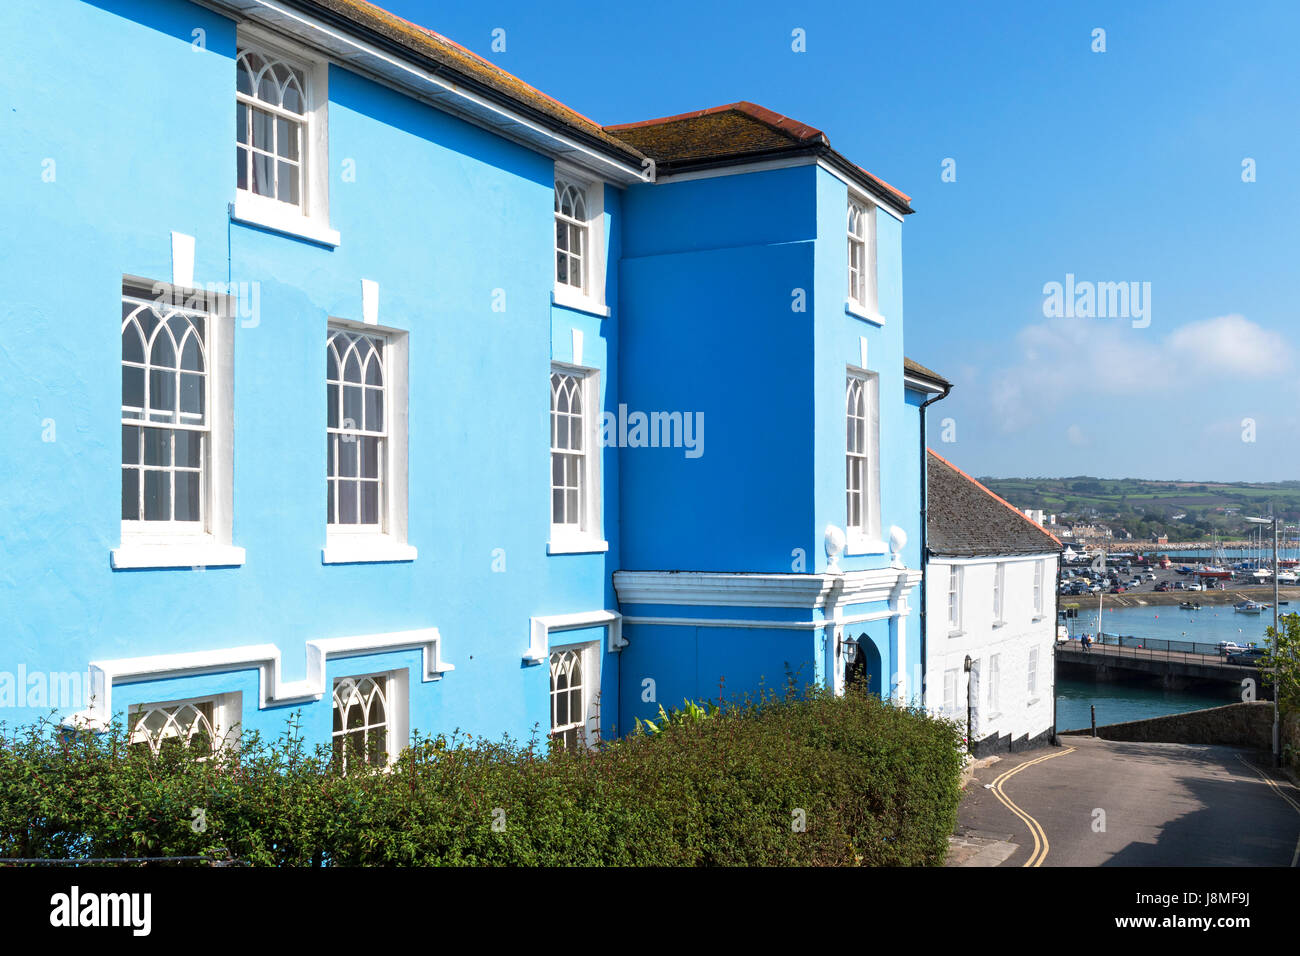 edwardian, victorian, architecture homes in penzance, cornwall, england, britain, uk, - Stock Image